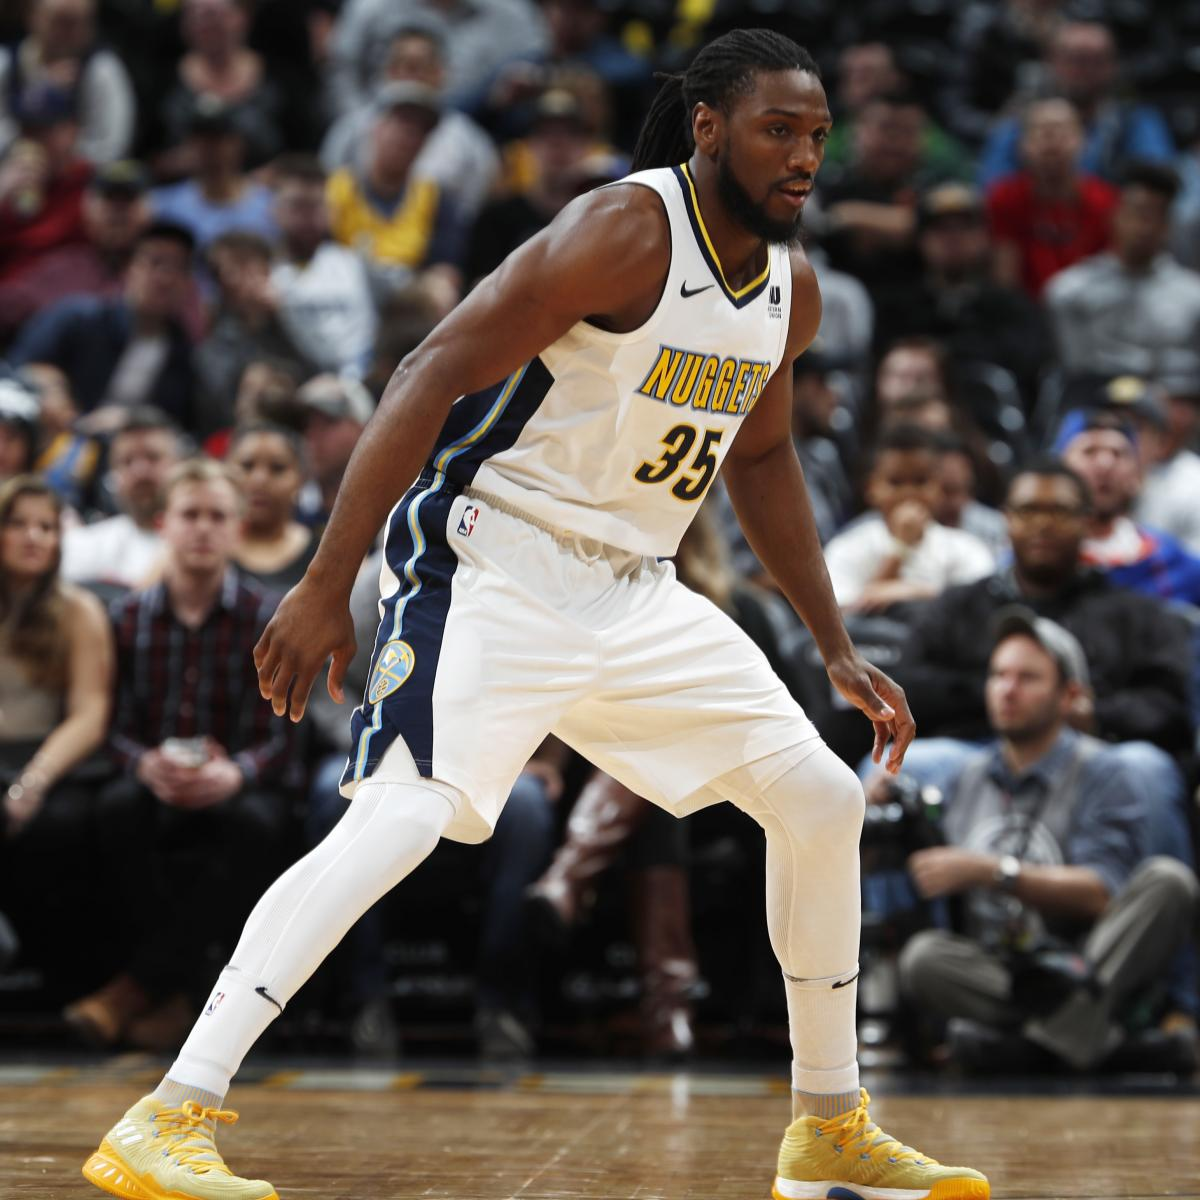 Report: Kenneth Faried, Darrell Arthur, More Traded To